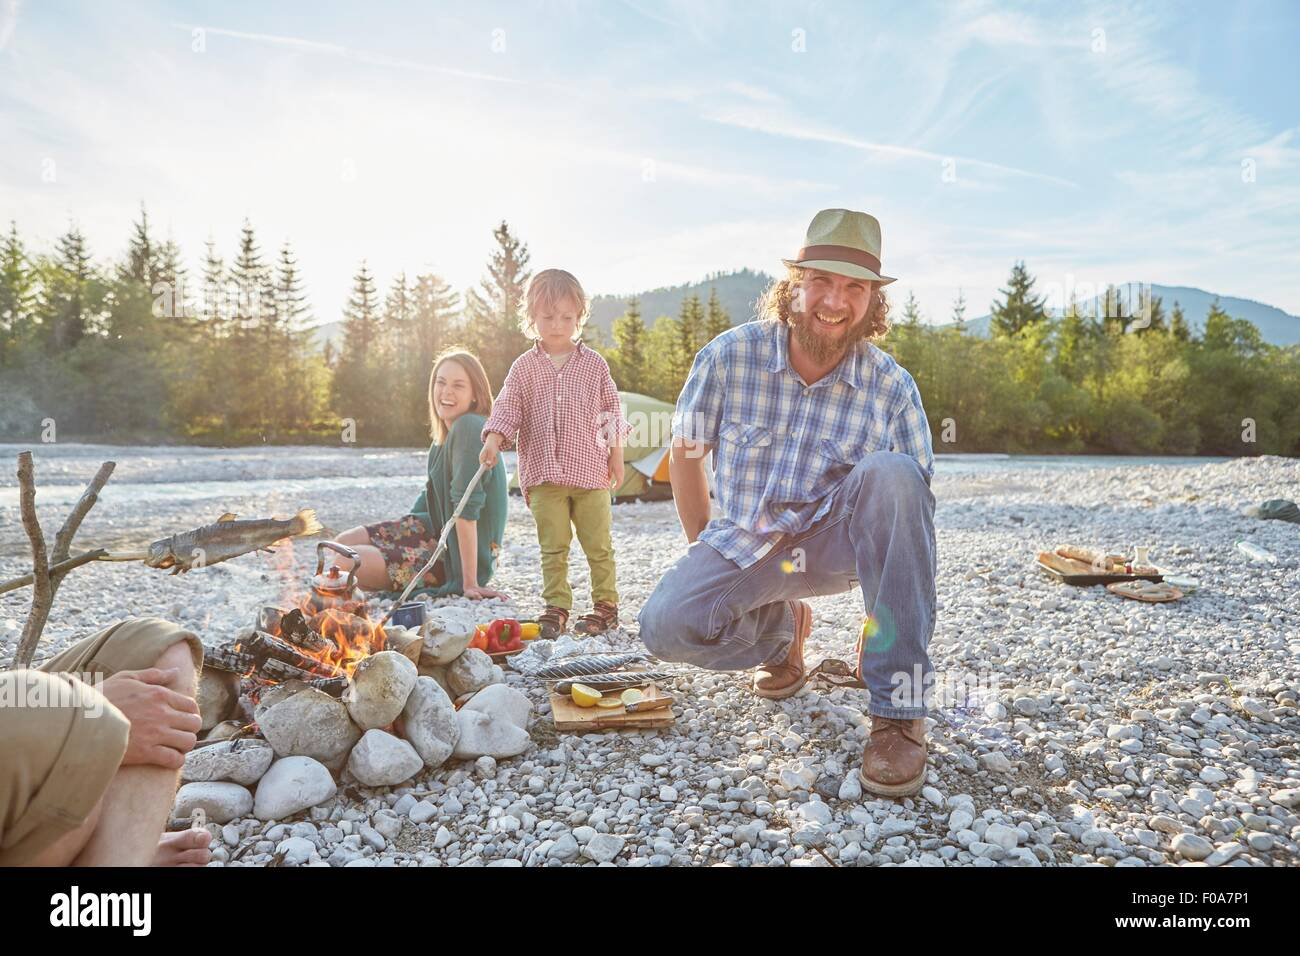 Mid adult man crouching next to campfire wearing hat, looking at camera, smiling - Stock Image